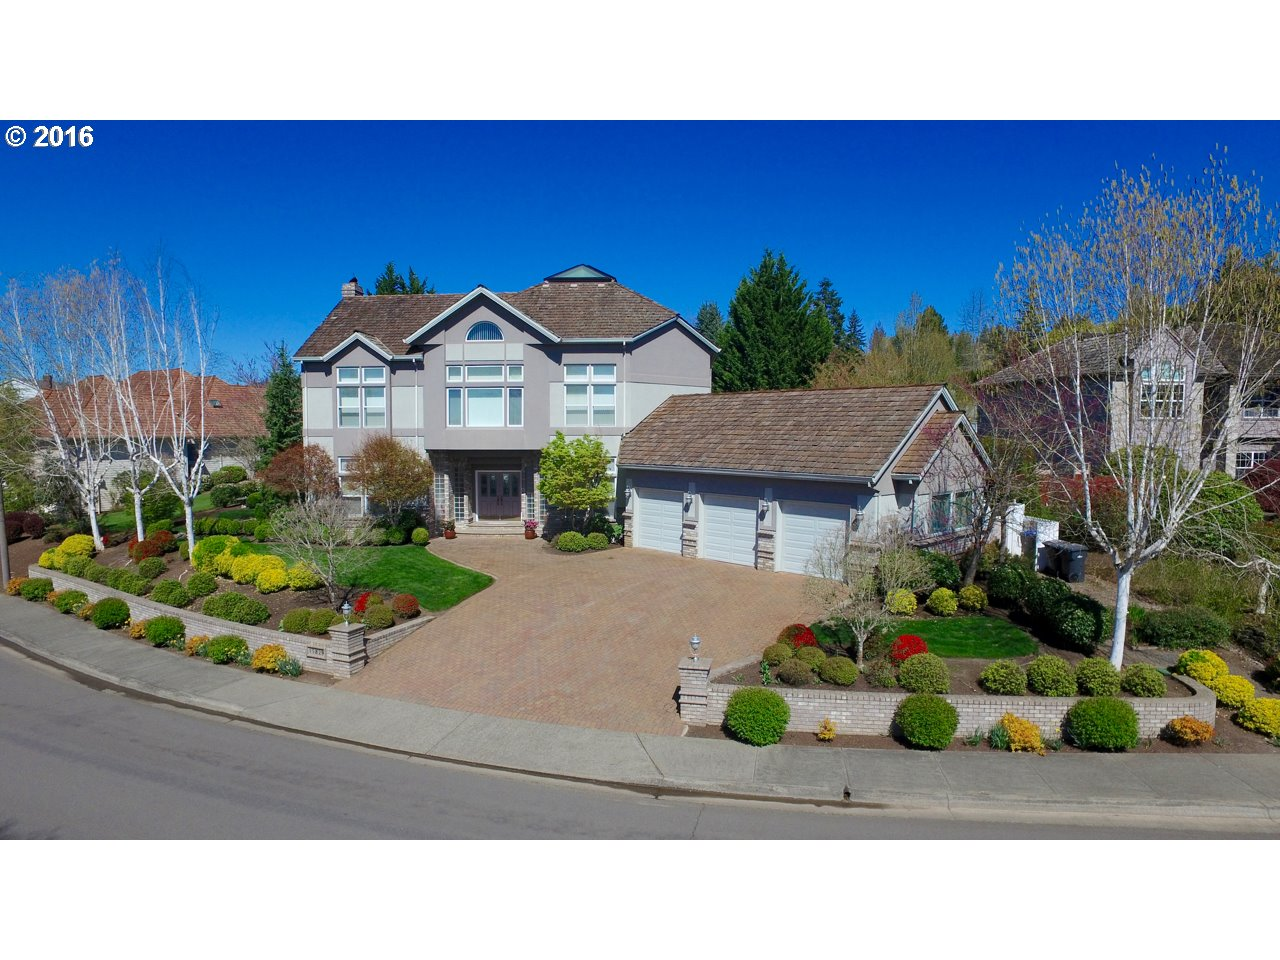 $999,999 - 5Br/5Ba -  for Sale in Bull Mountain, Tigard